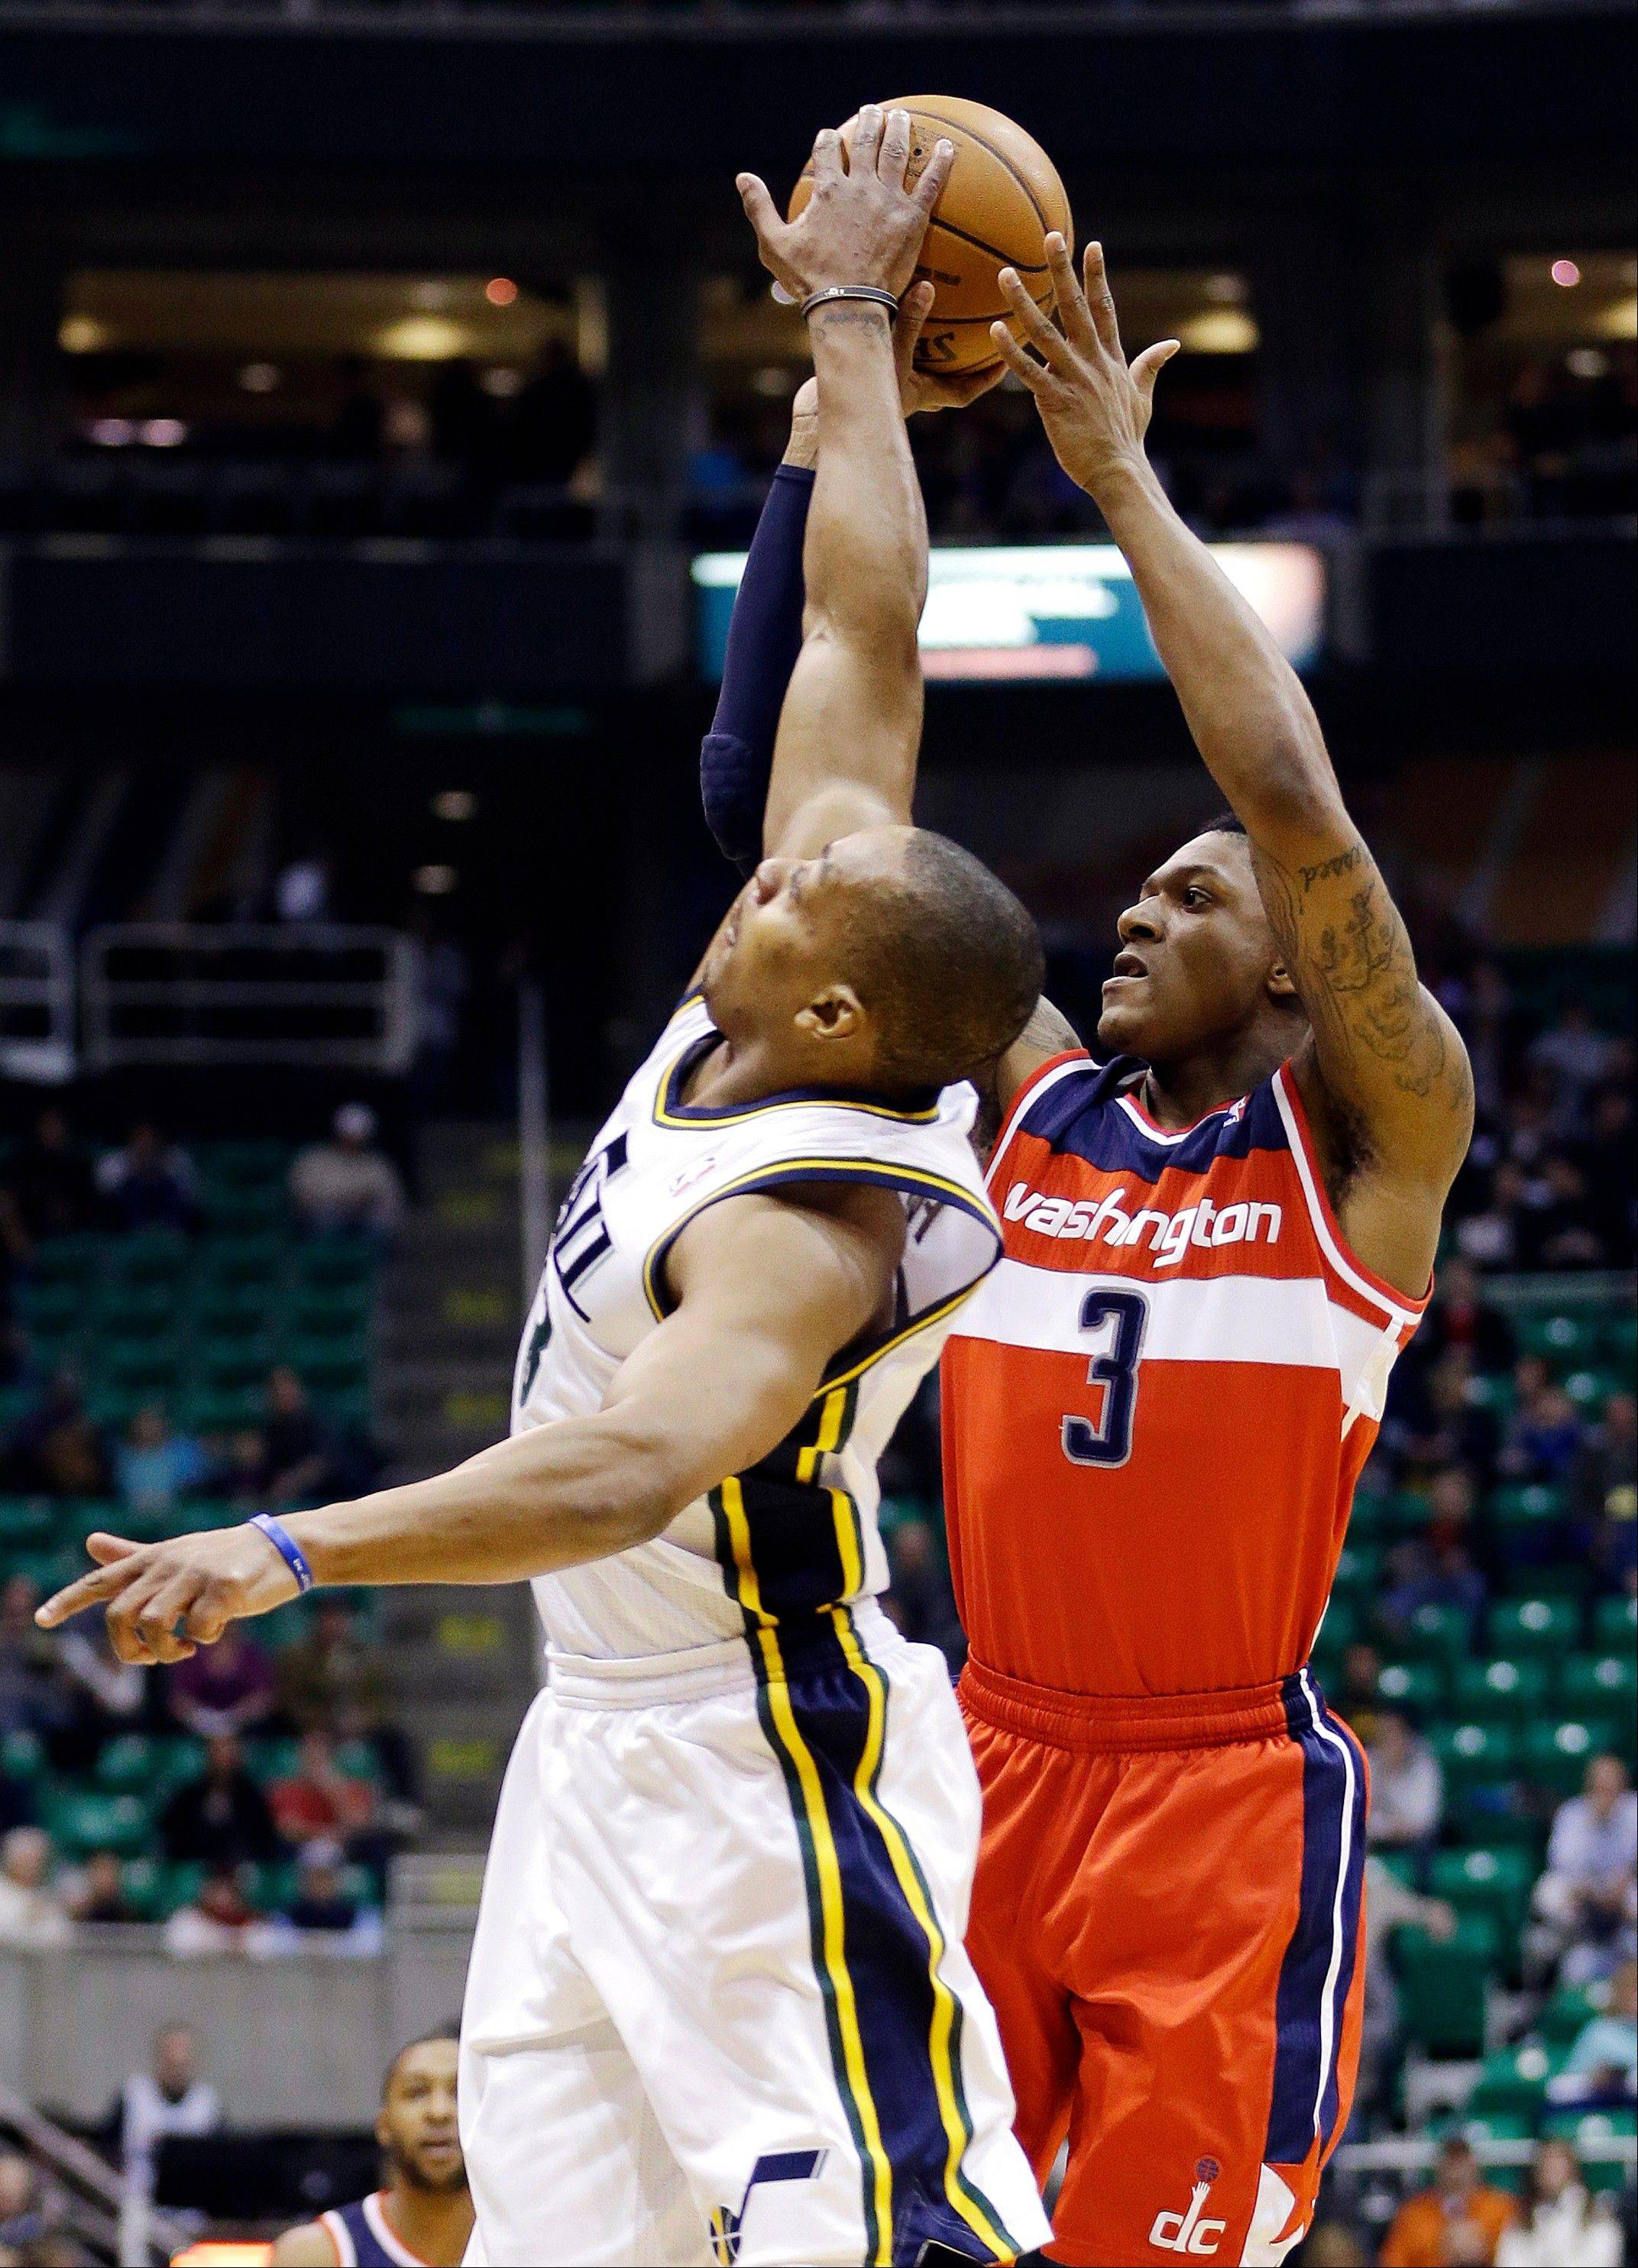 Utah Jazz�s Randy Foye, left, blocks the shot of Washington Wizards� Bradley Beal (3) during the first quarter of an NBA basketball game, Wednesday, Jan. 23, 2013, in Salt Lake City.